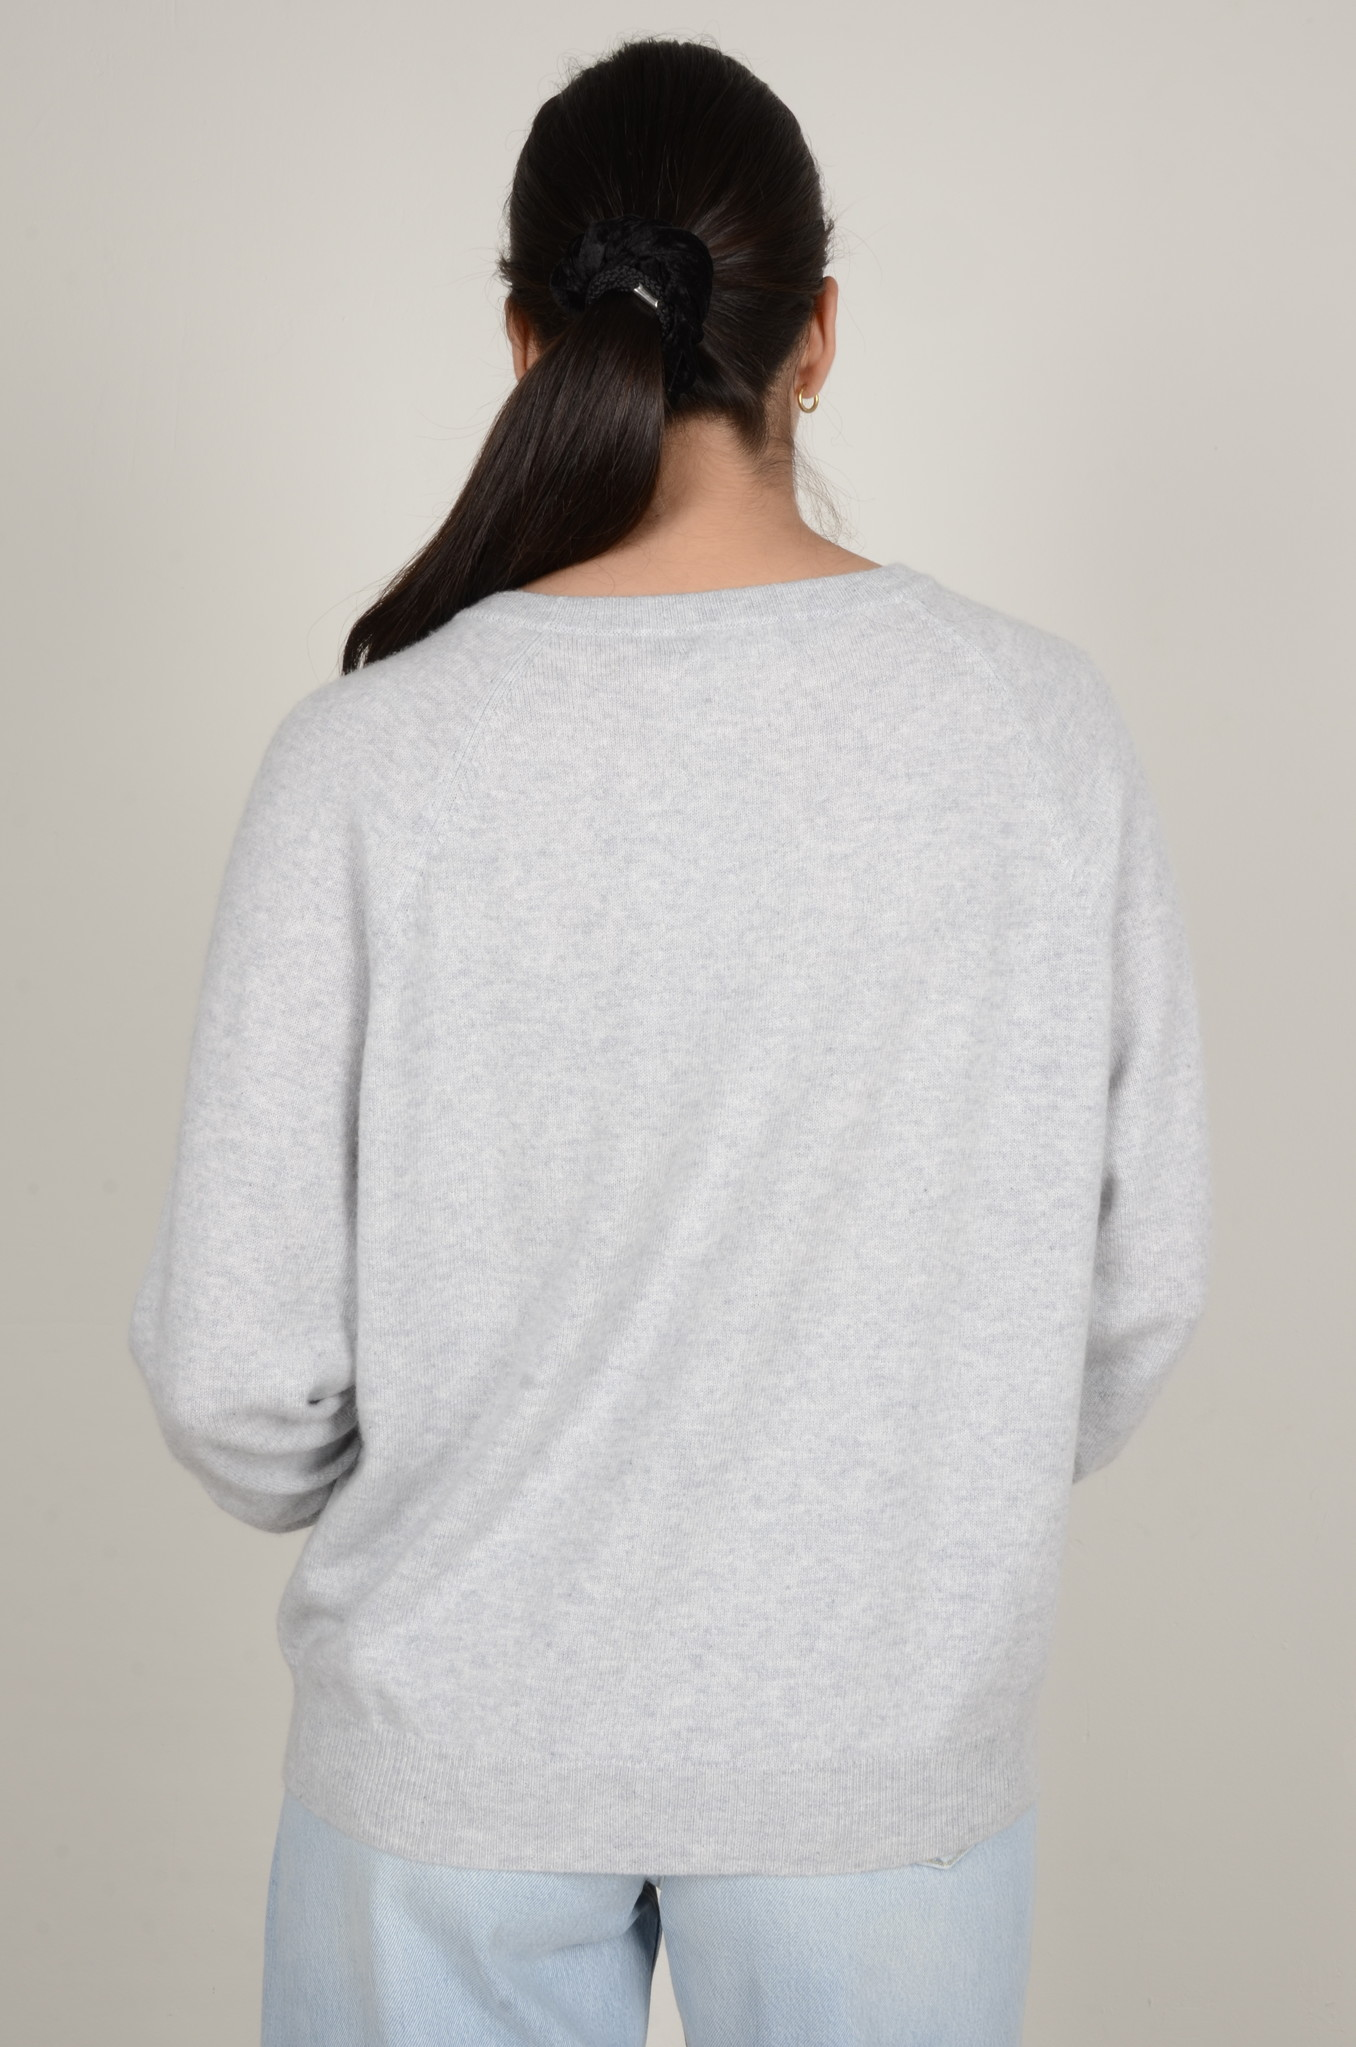 CAROLINA CASHMERE KNIT IN LIGHT GREY-3